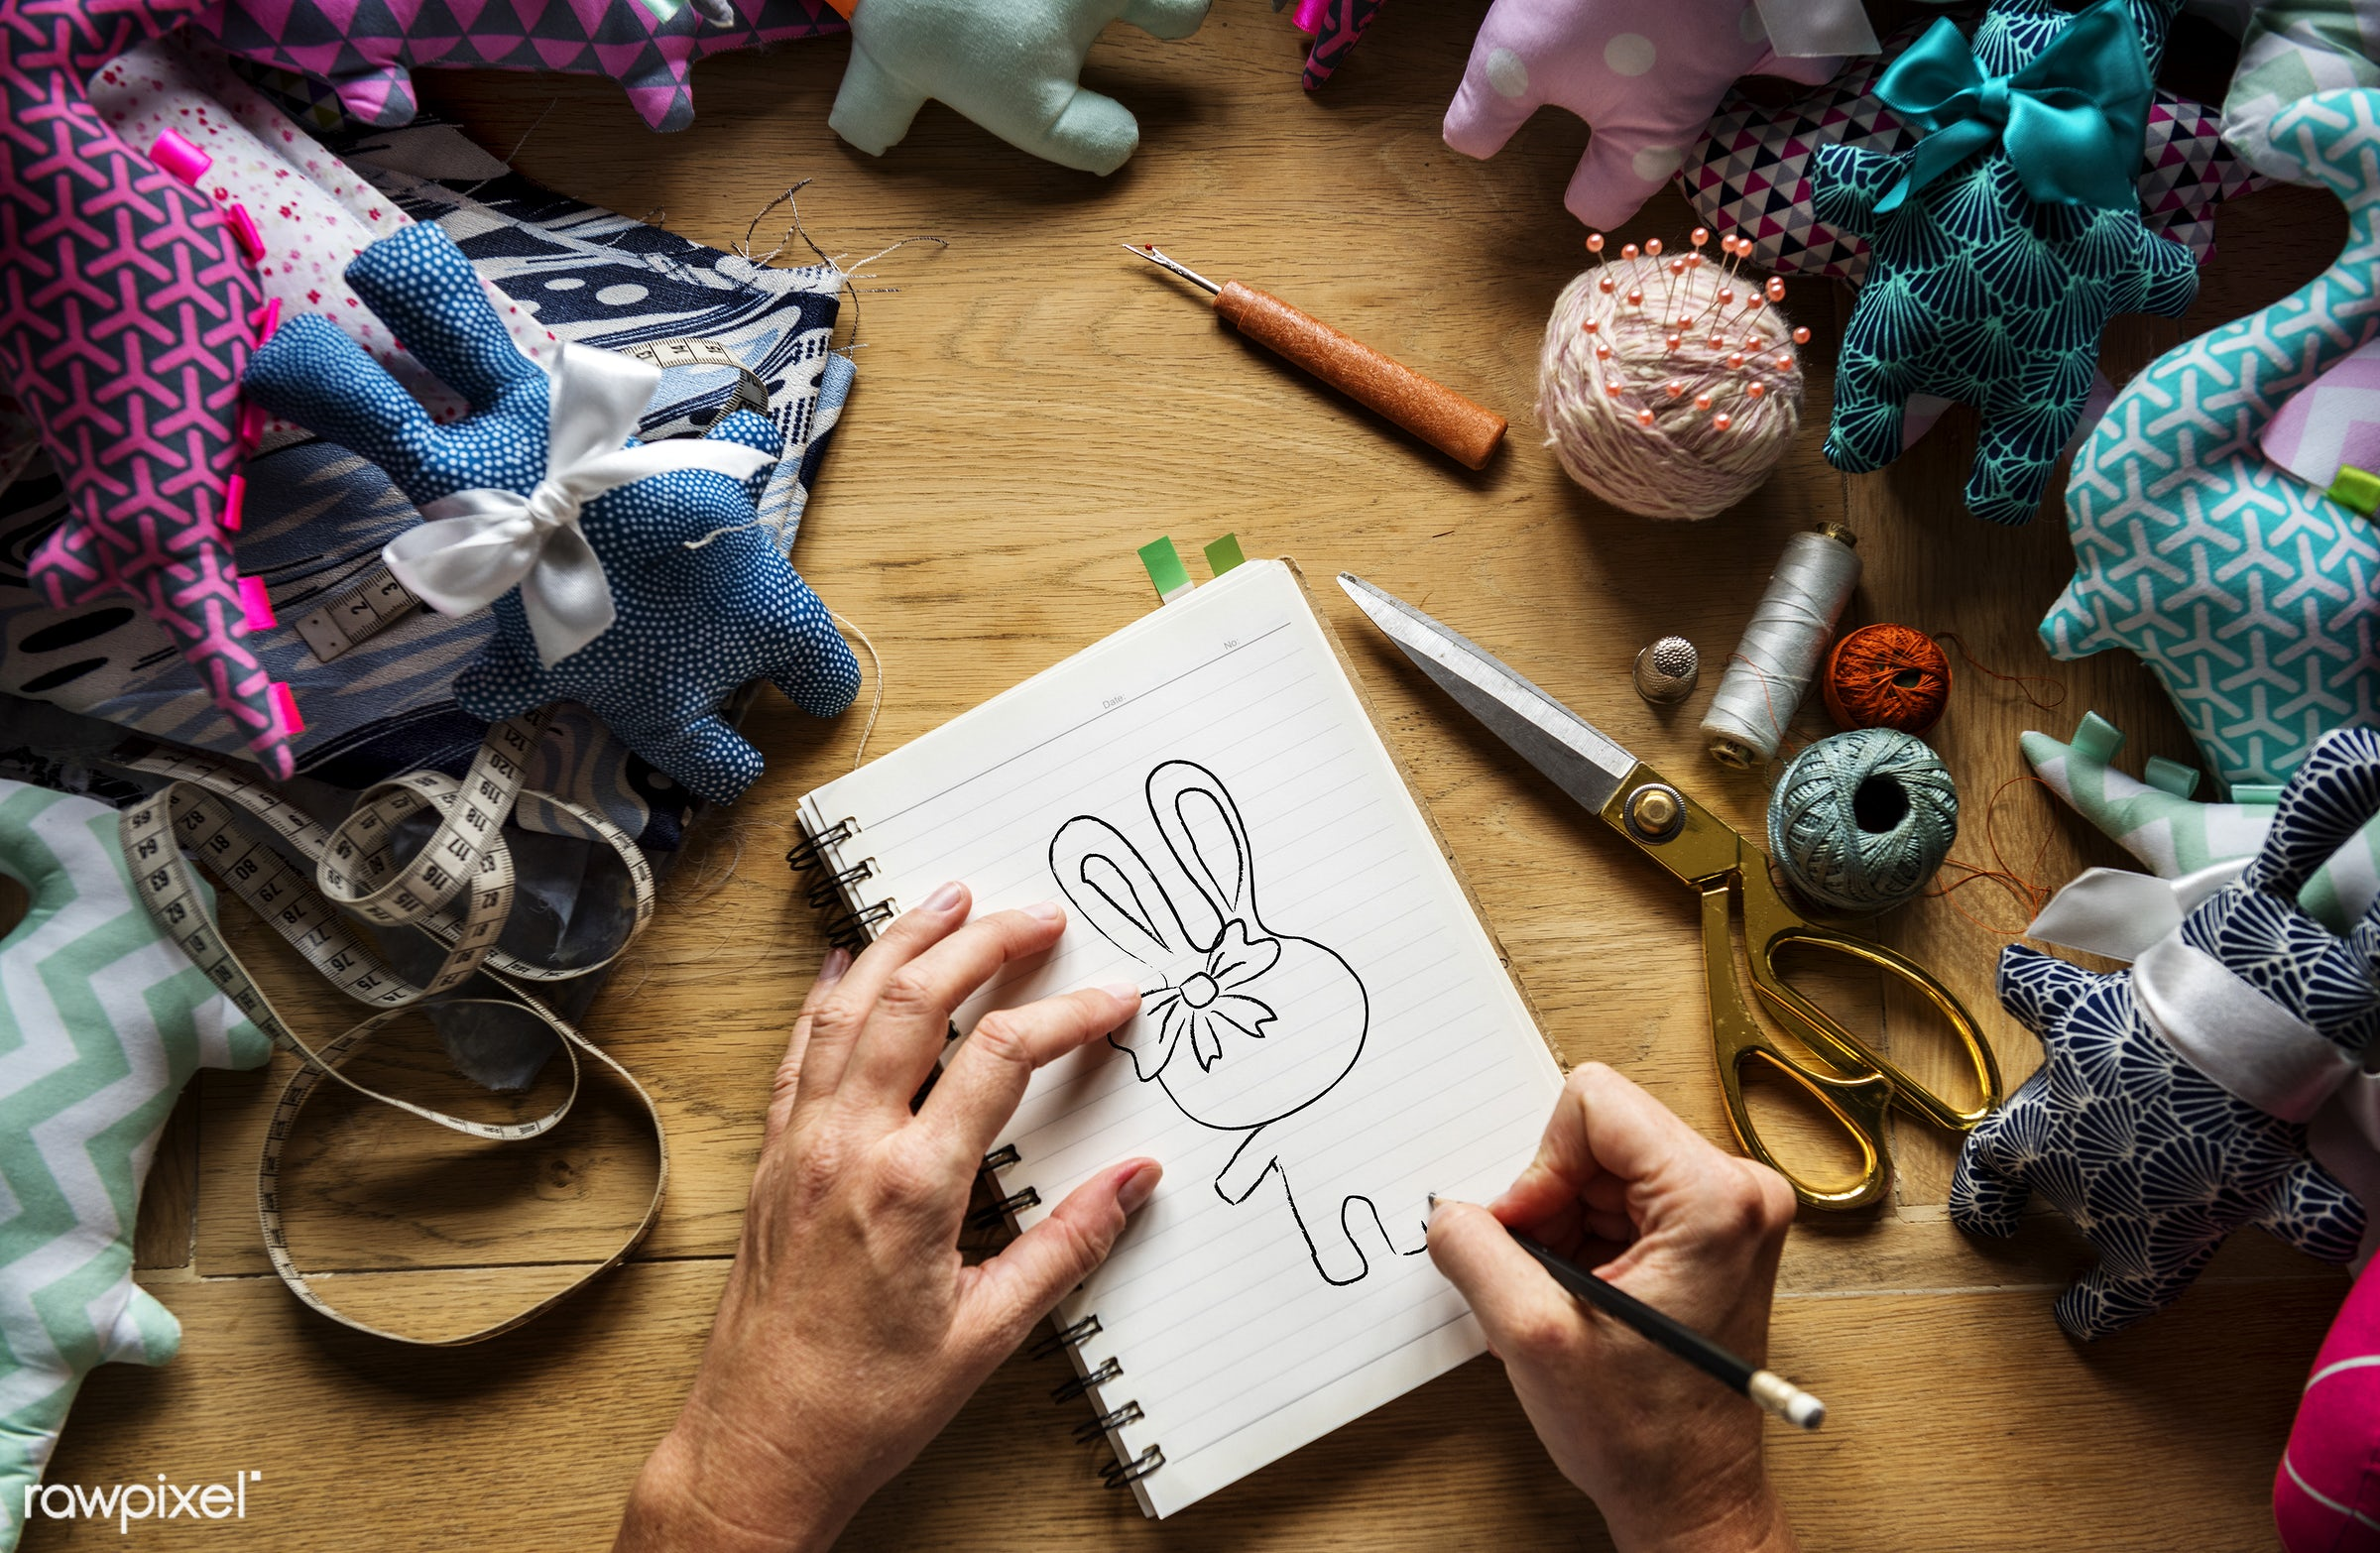 workspace, handicraft, workplace, stitching, equipment, drawing, tools, cloth, hands, woman, thread, lifestyle, making,...